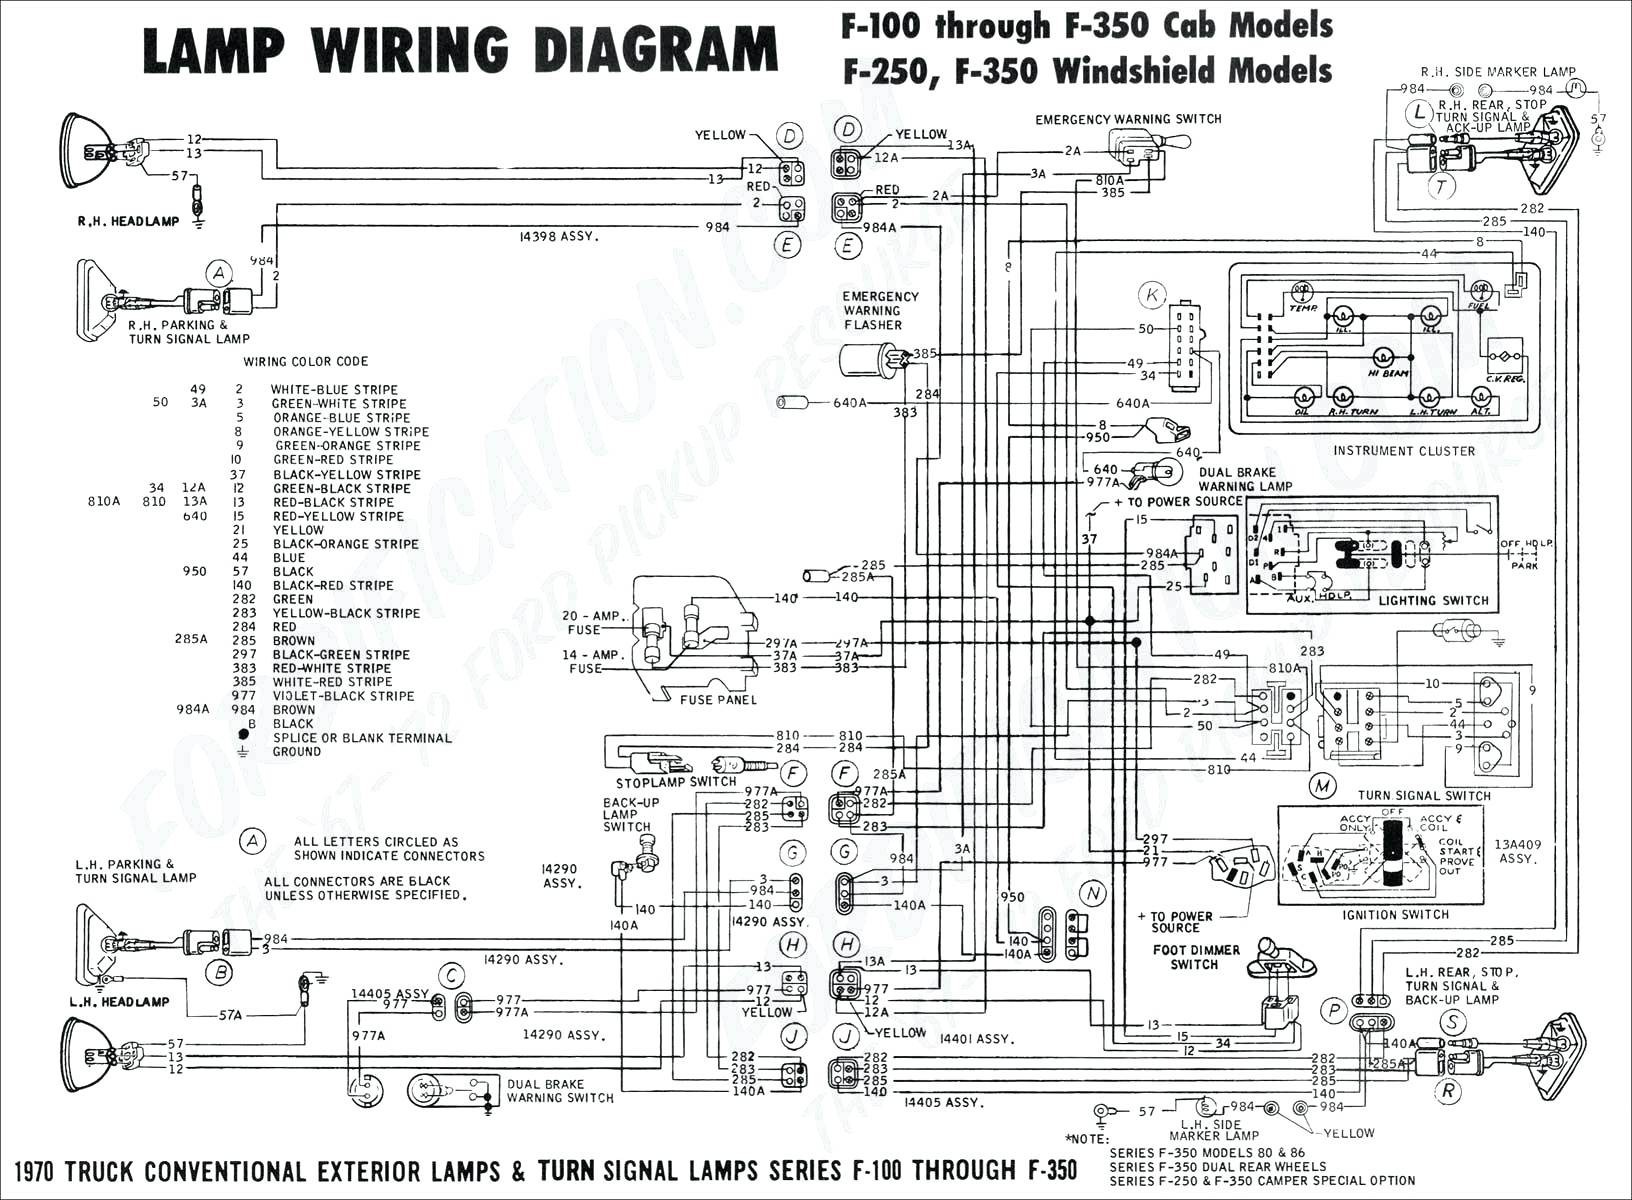 Fine Pioneer Fh X700bt Wiring Harness Diagram Images - Electrical ...